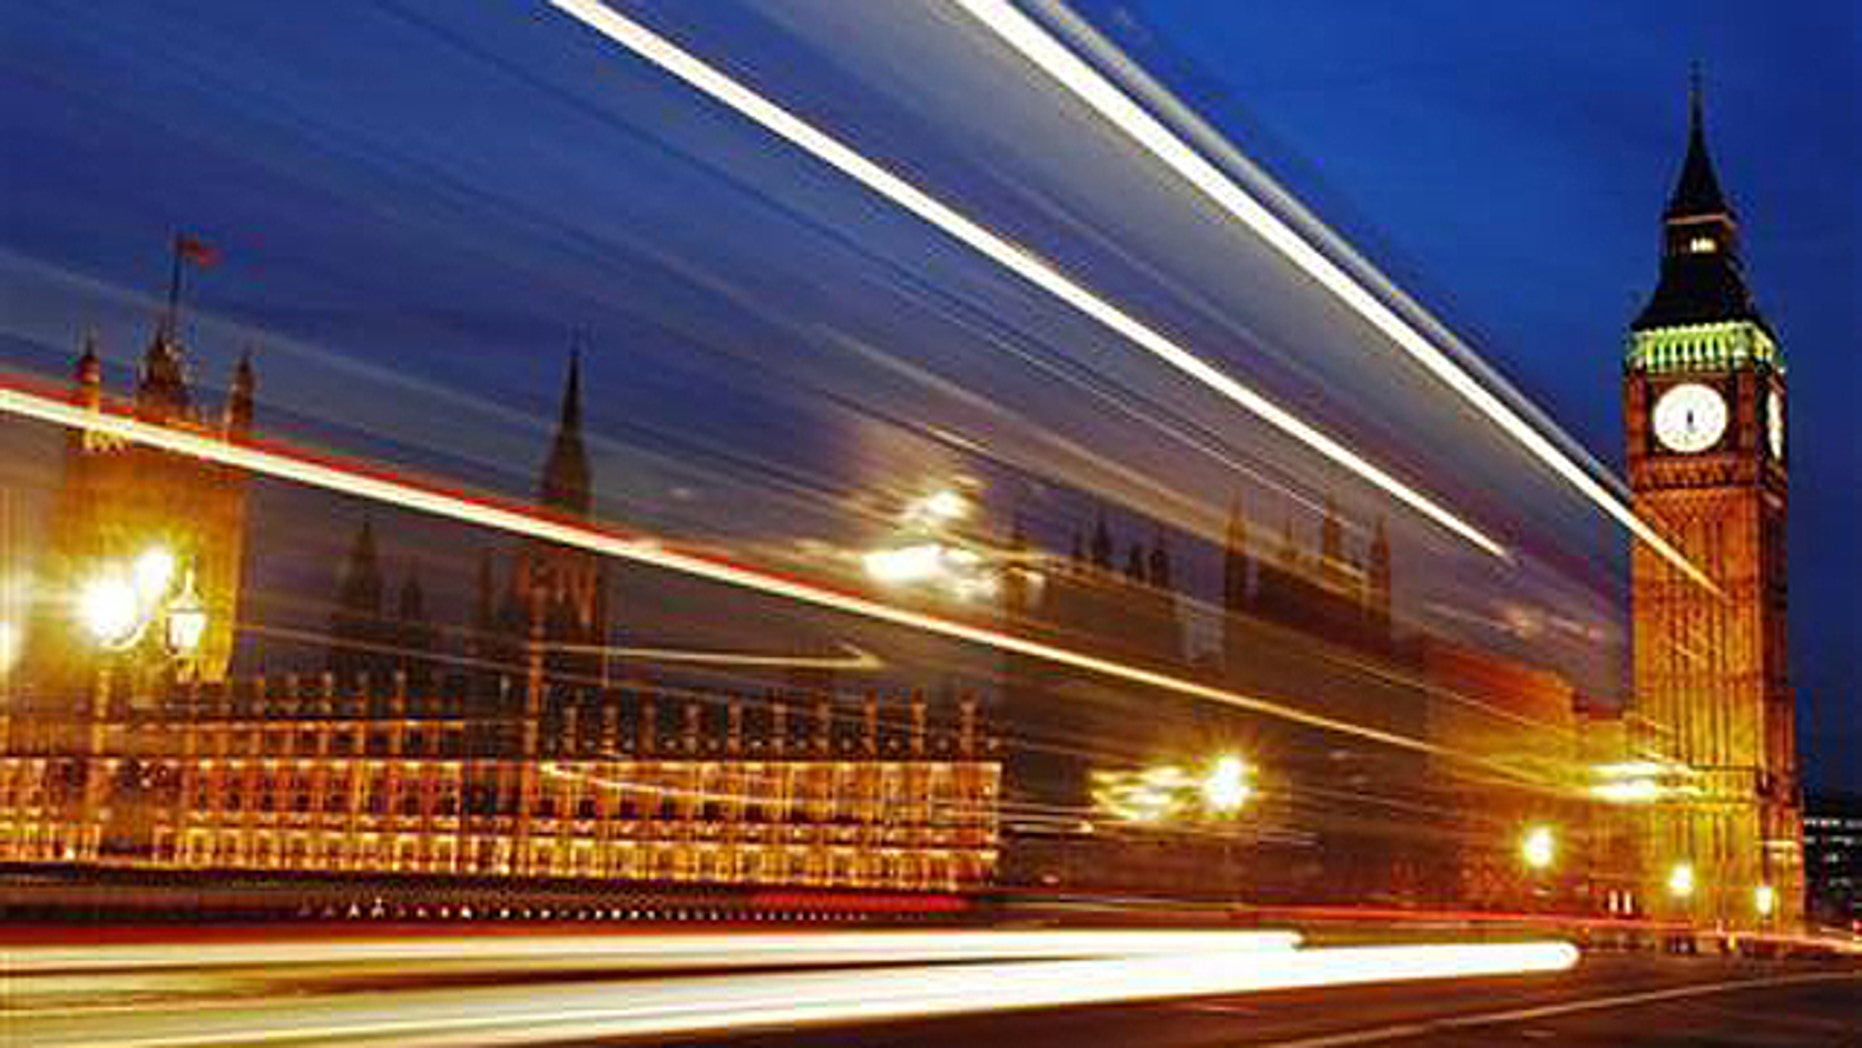 Light trails made by a passing bus illuminate the night sky in front of Britain's Houses of Parliament in London, February 4, 2010.